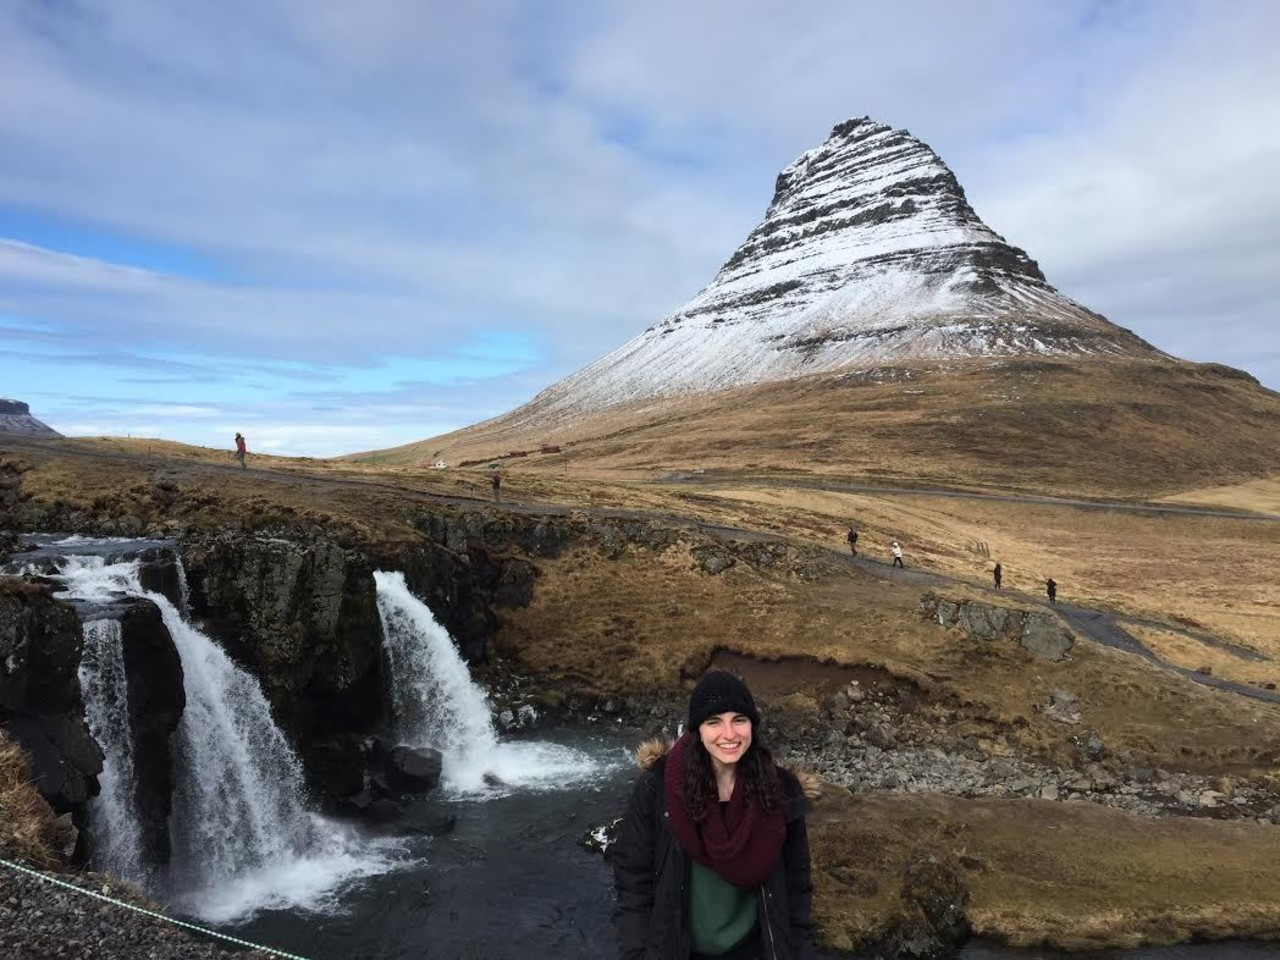 Sydney, Adventurer of the Week, is on Snæfellsnes peninsula posing for a photo in front of  waterfall and Kirkjufell mountain